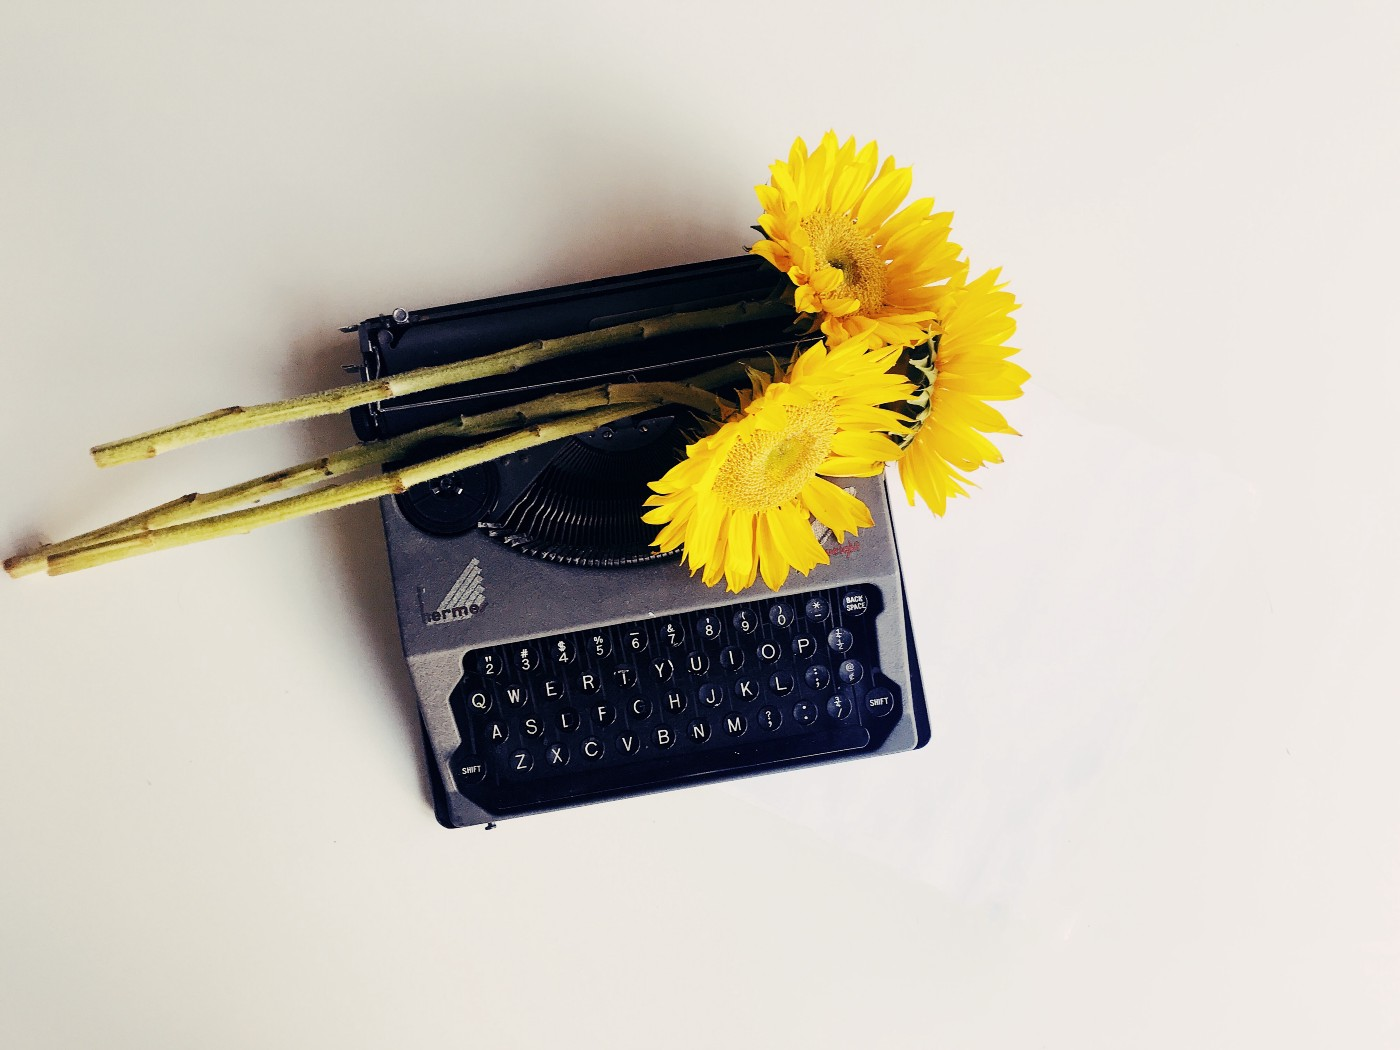 old-fashioned grey typewriter with yellow sunflowers on top